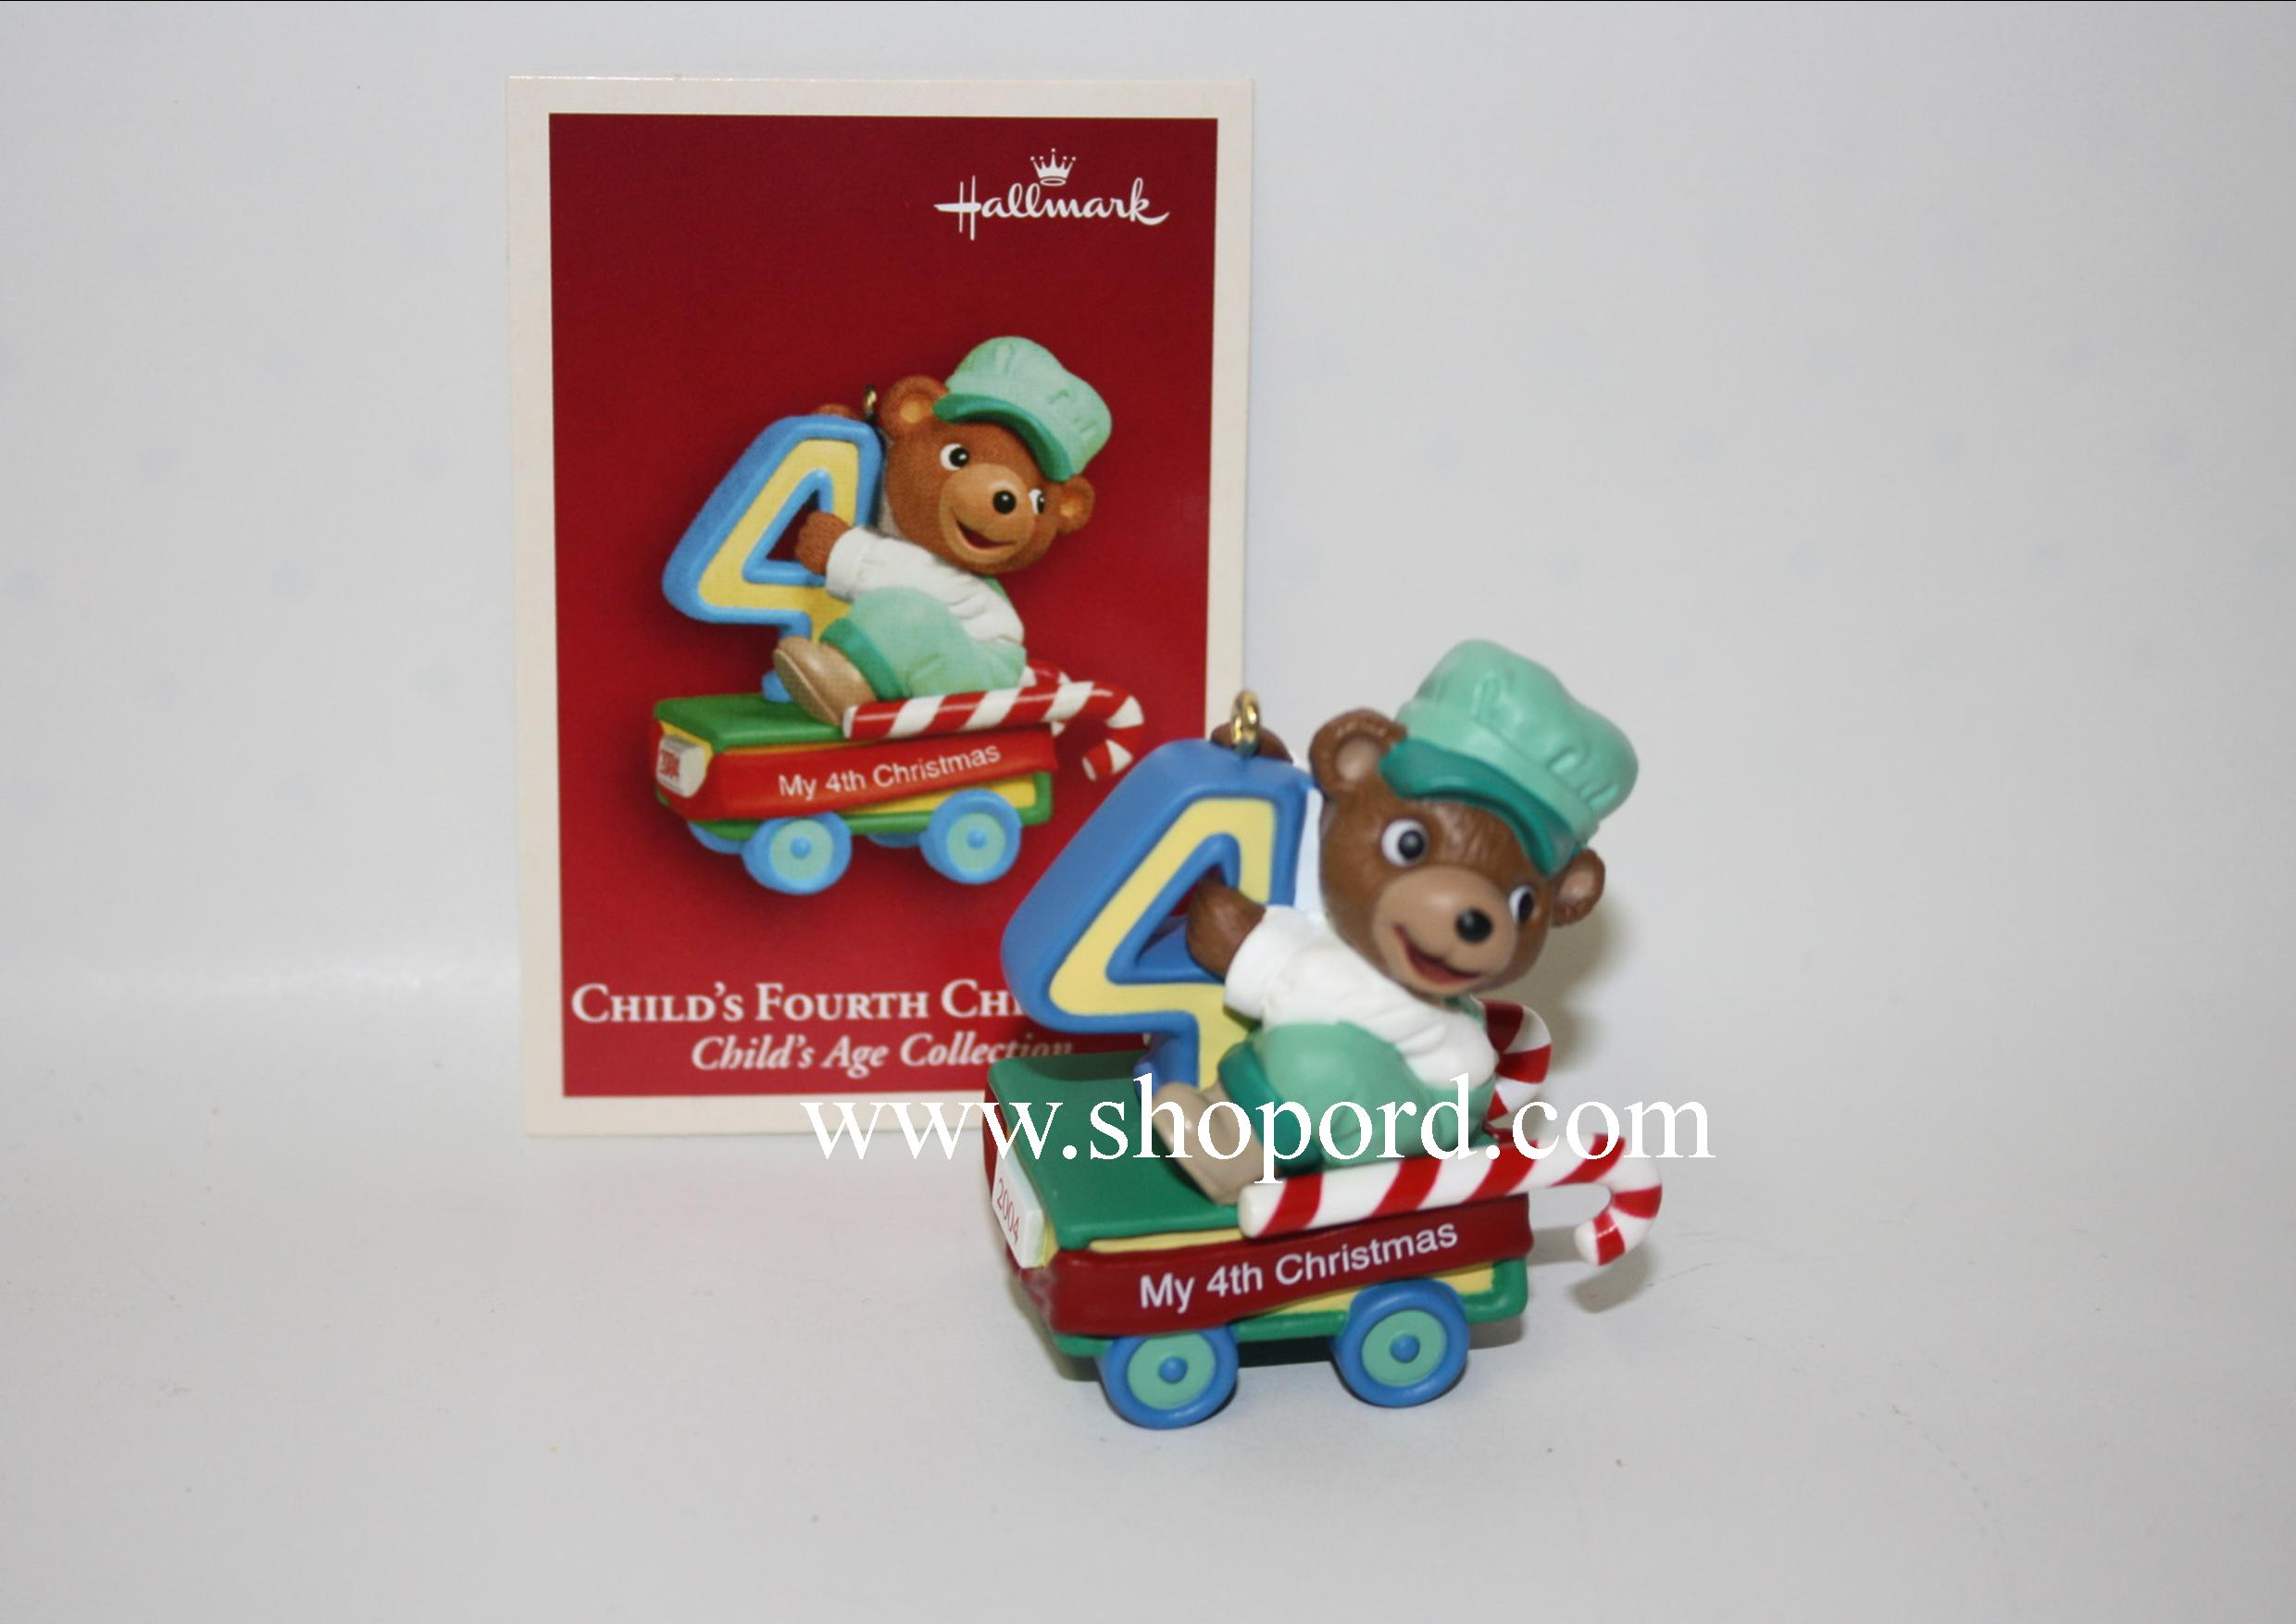 Hallmark 2004 Childs Fourth Christmas Childs Age Train Collection QXG5571